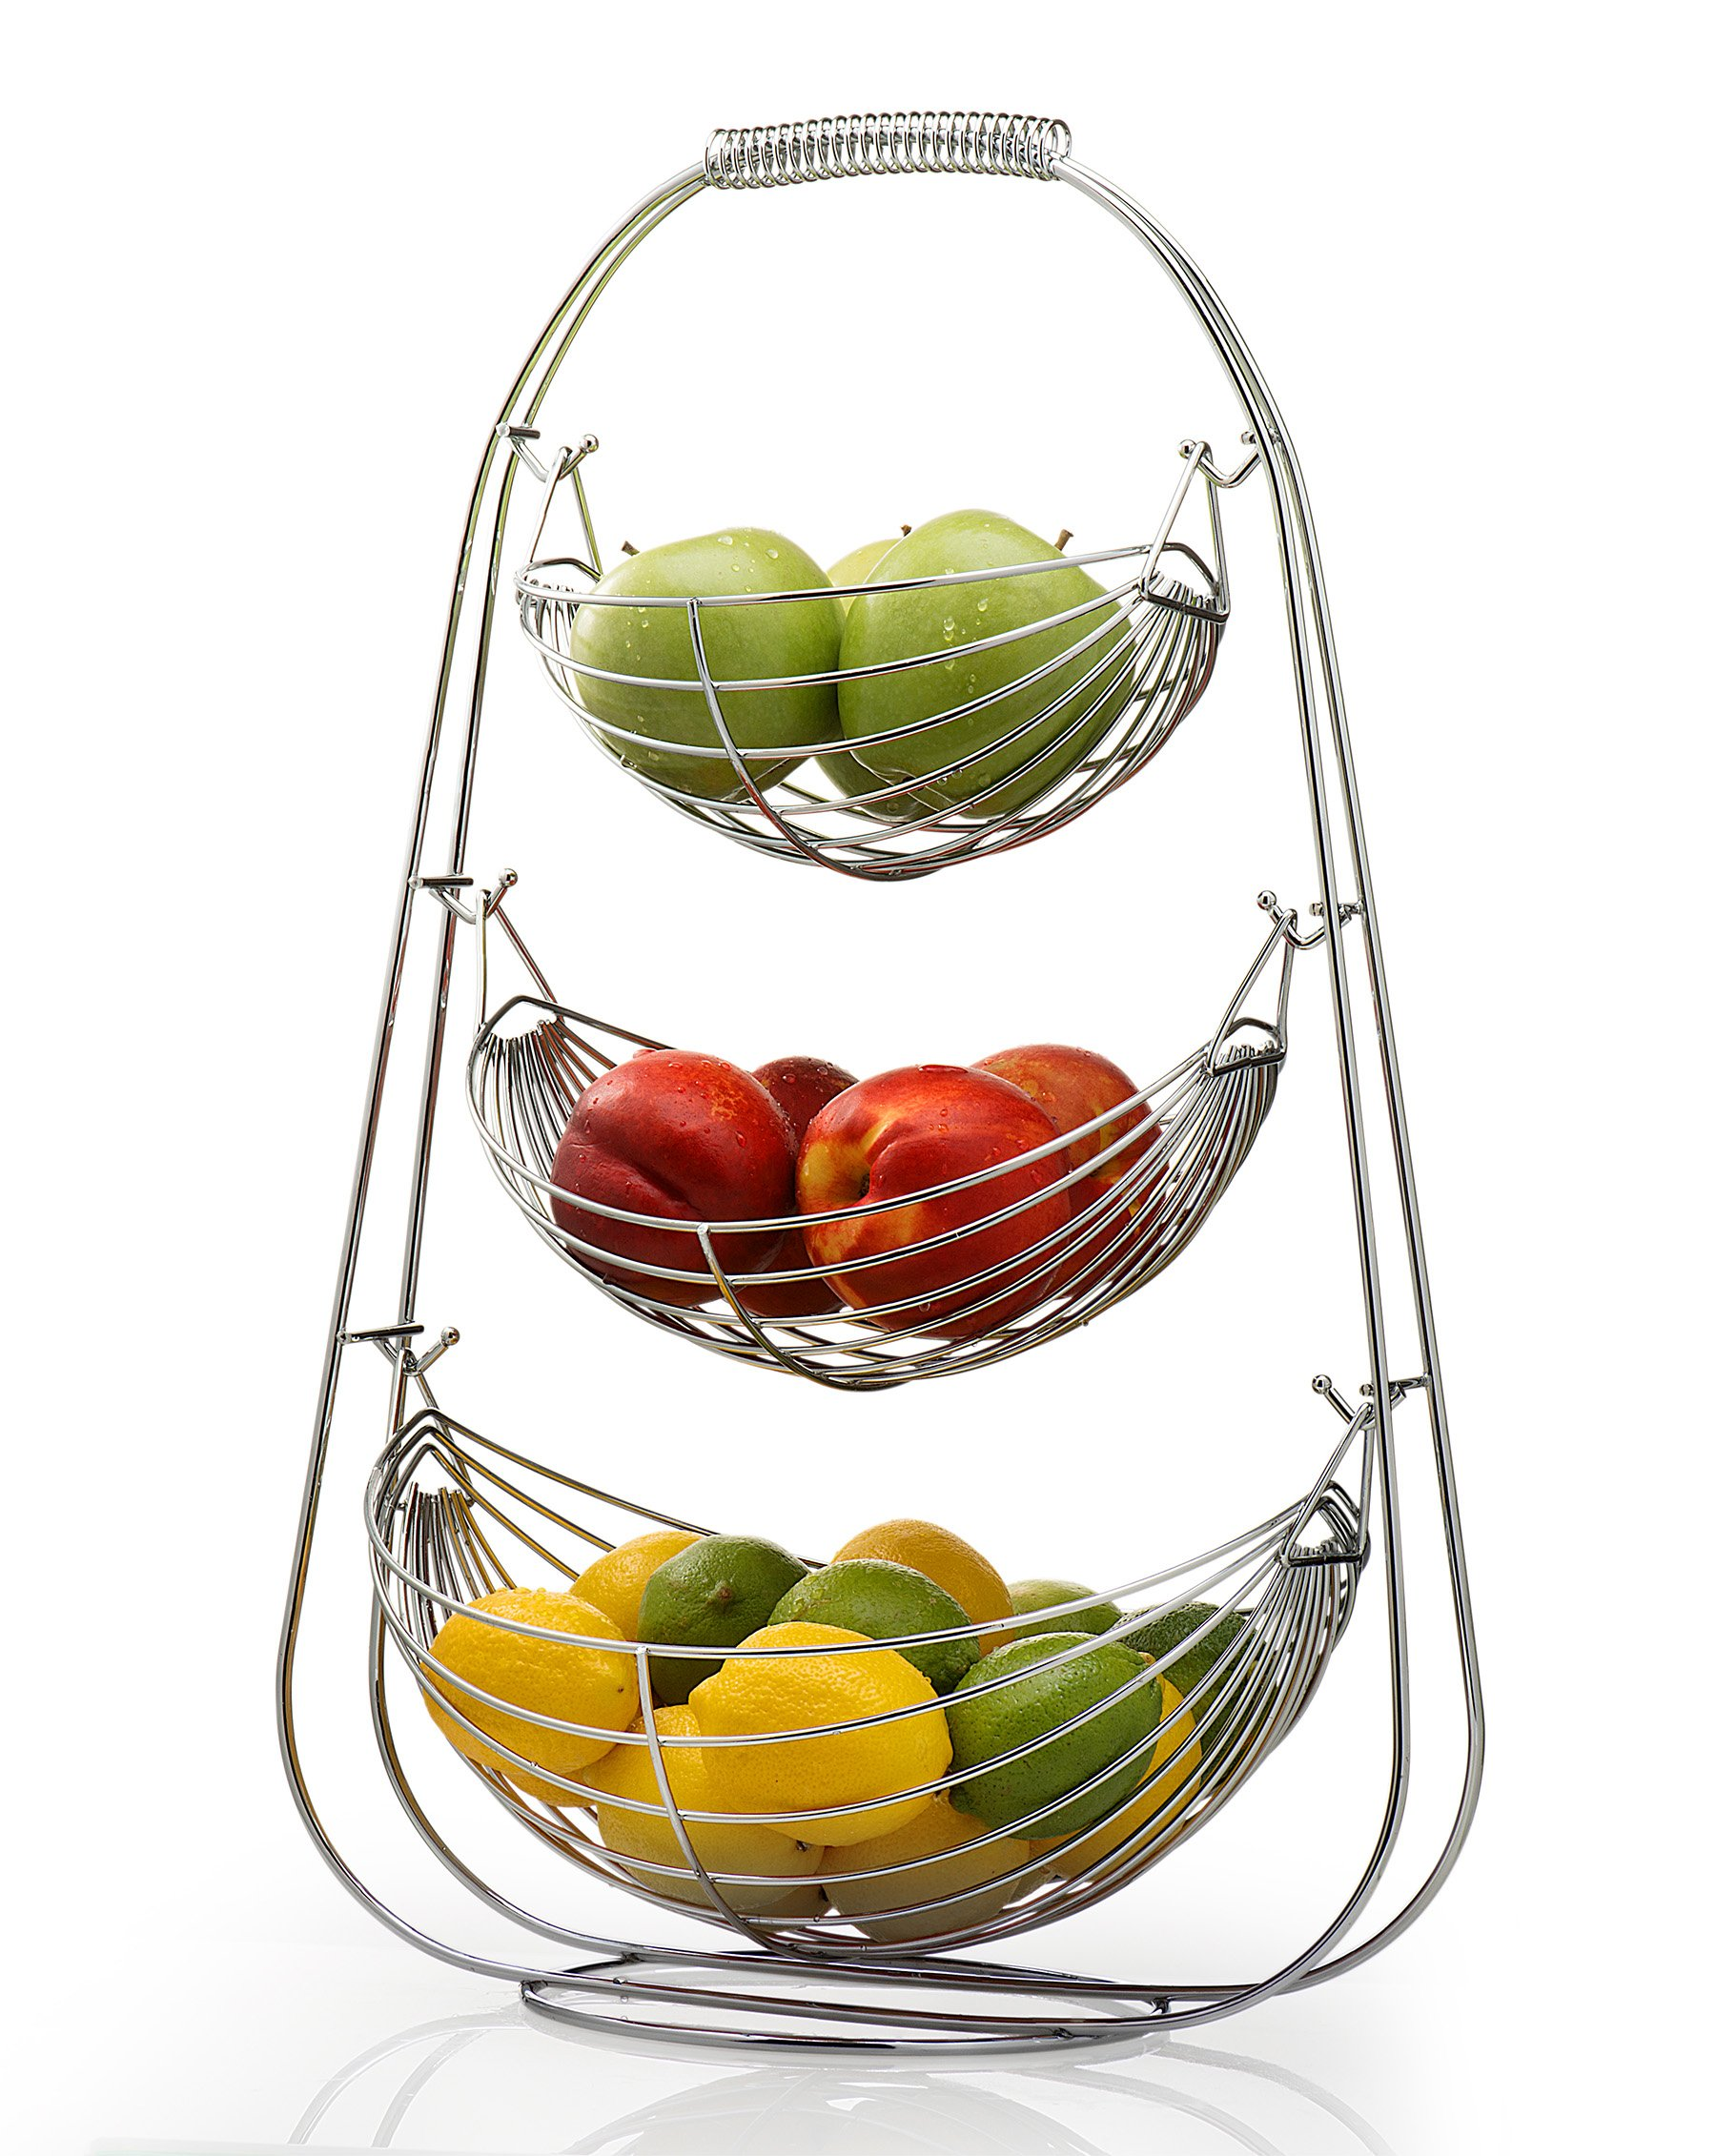 Sagler 4218 3 Tier Stainless Steel Large Bowl-Useful for Fruit Storage Basket, 14'' W, 23''H, 12'' D, by Sagler